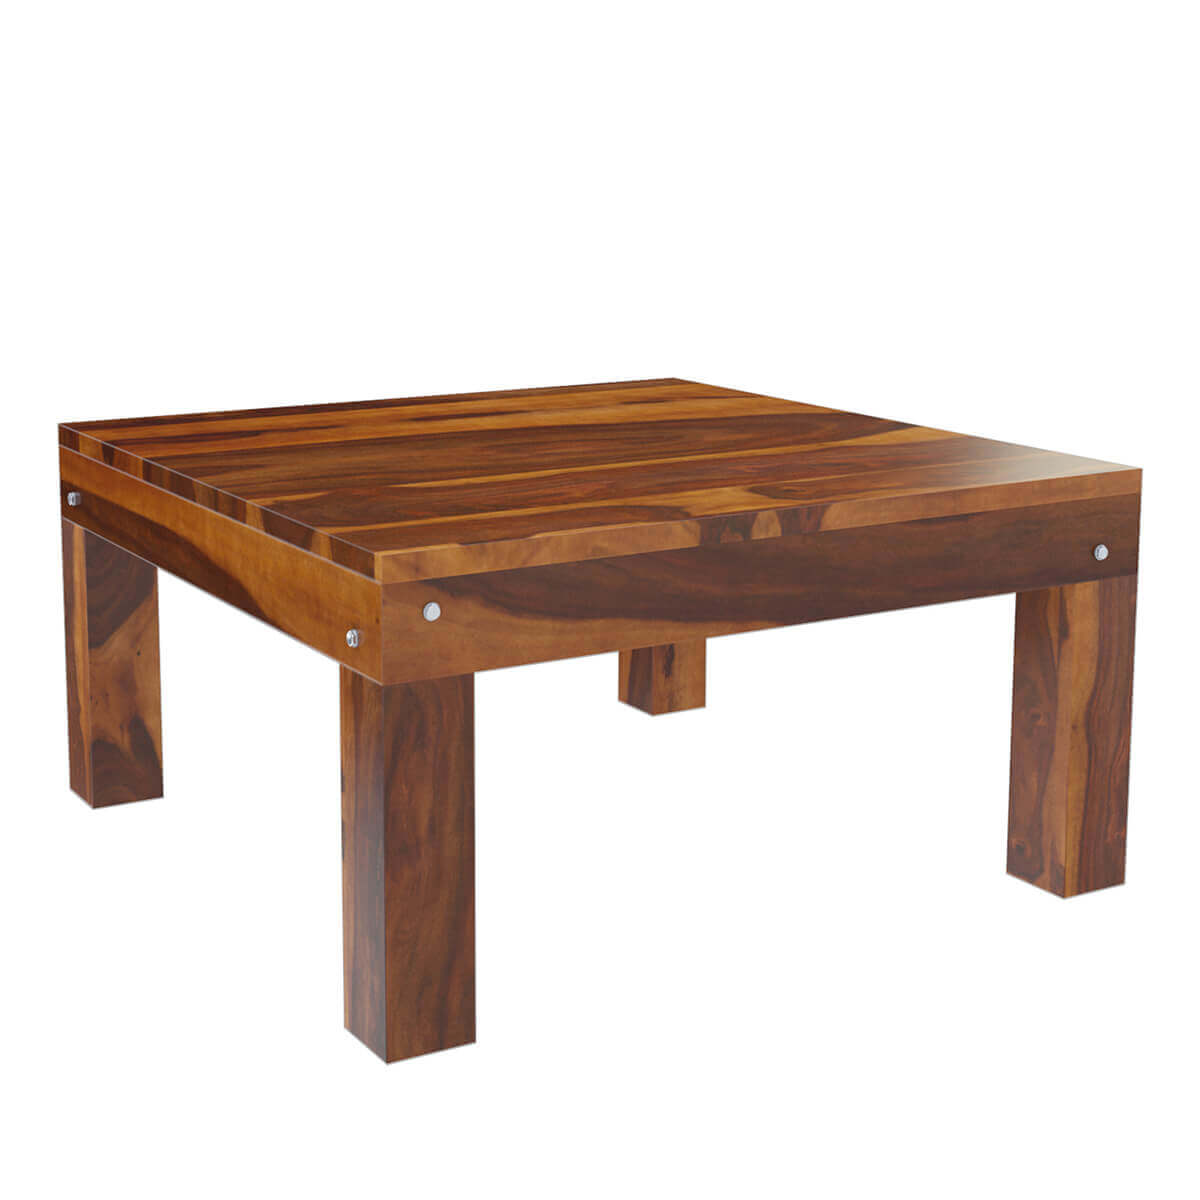 Square Coffee Table: Solid Wood Traditional Rustic Square Coffee Table